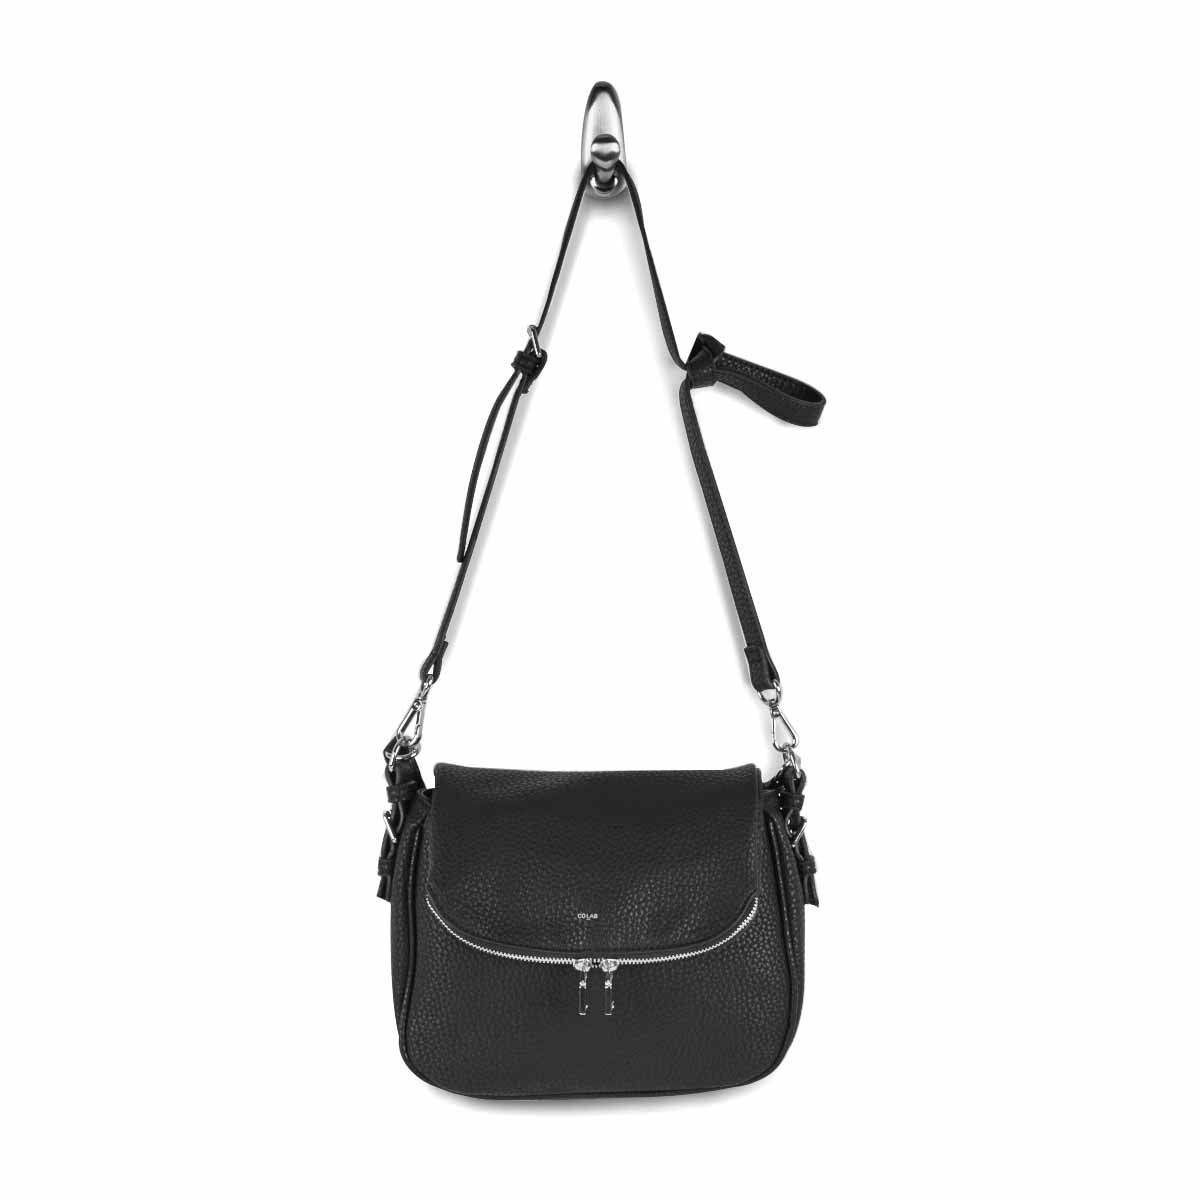 Lds Sydney Handle blk crossbody bag